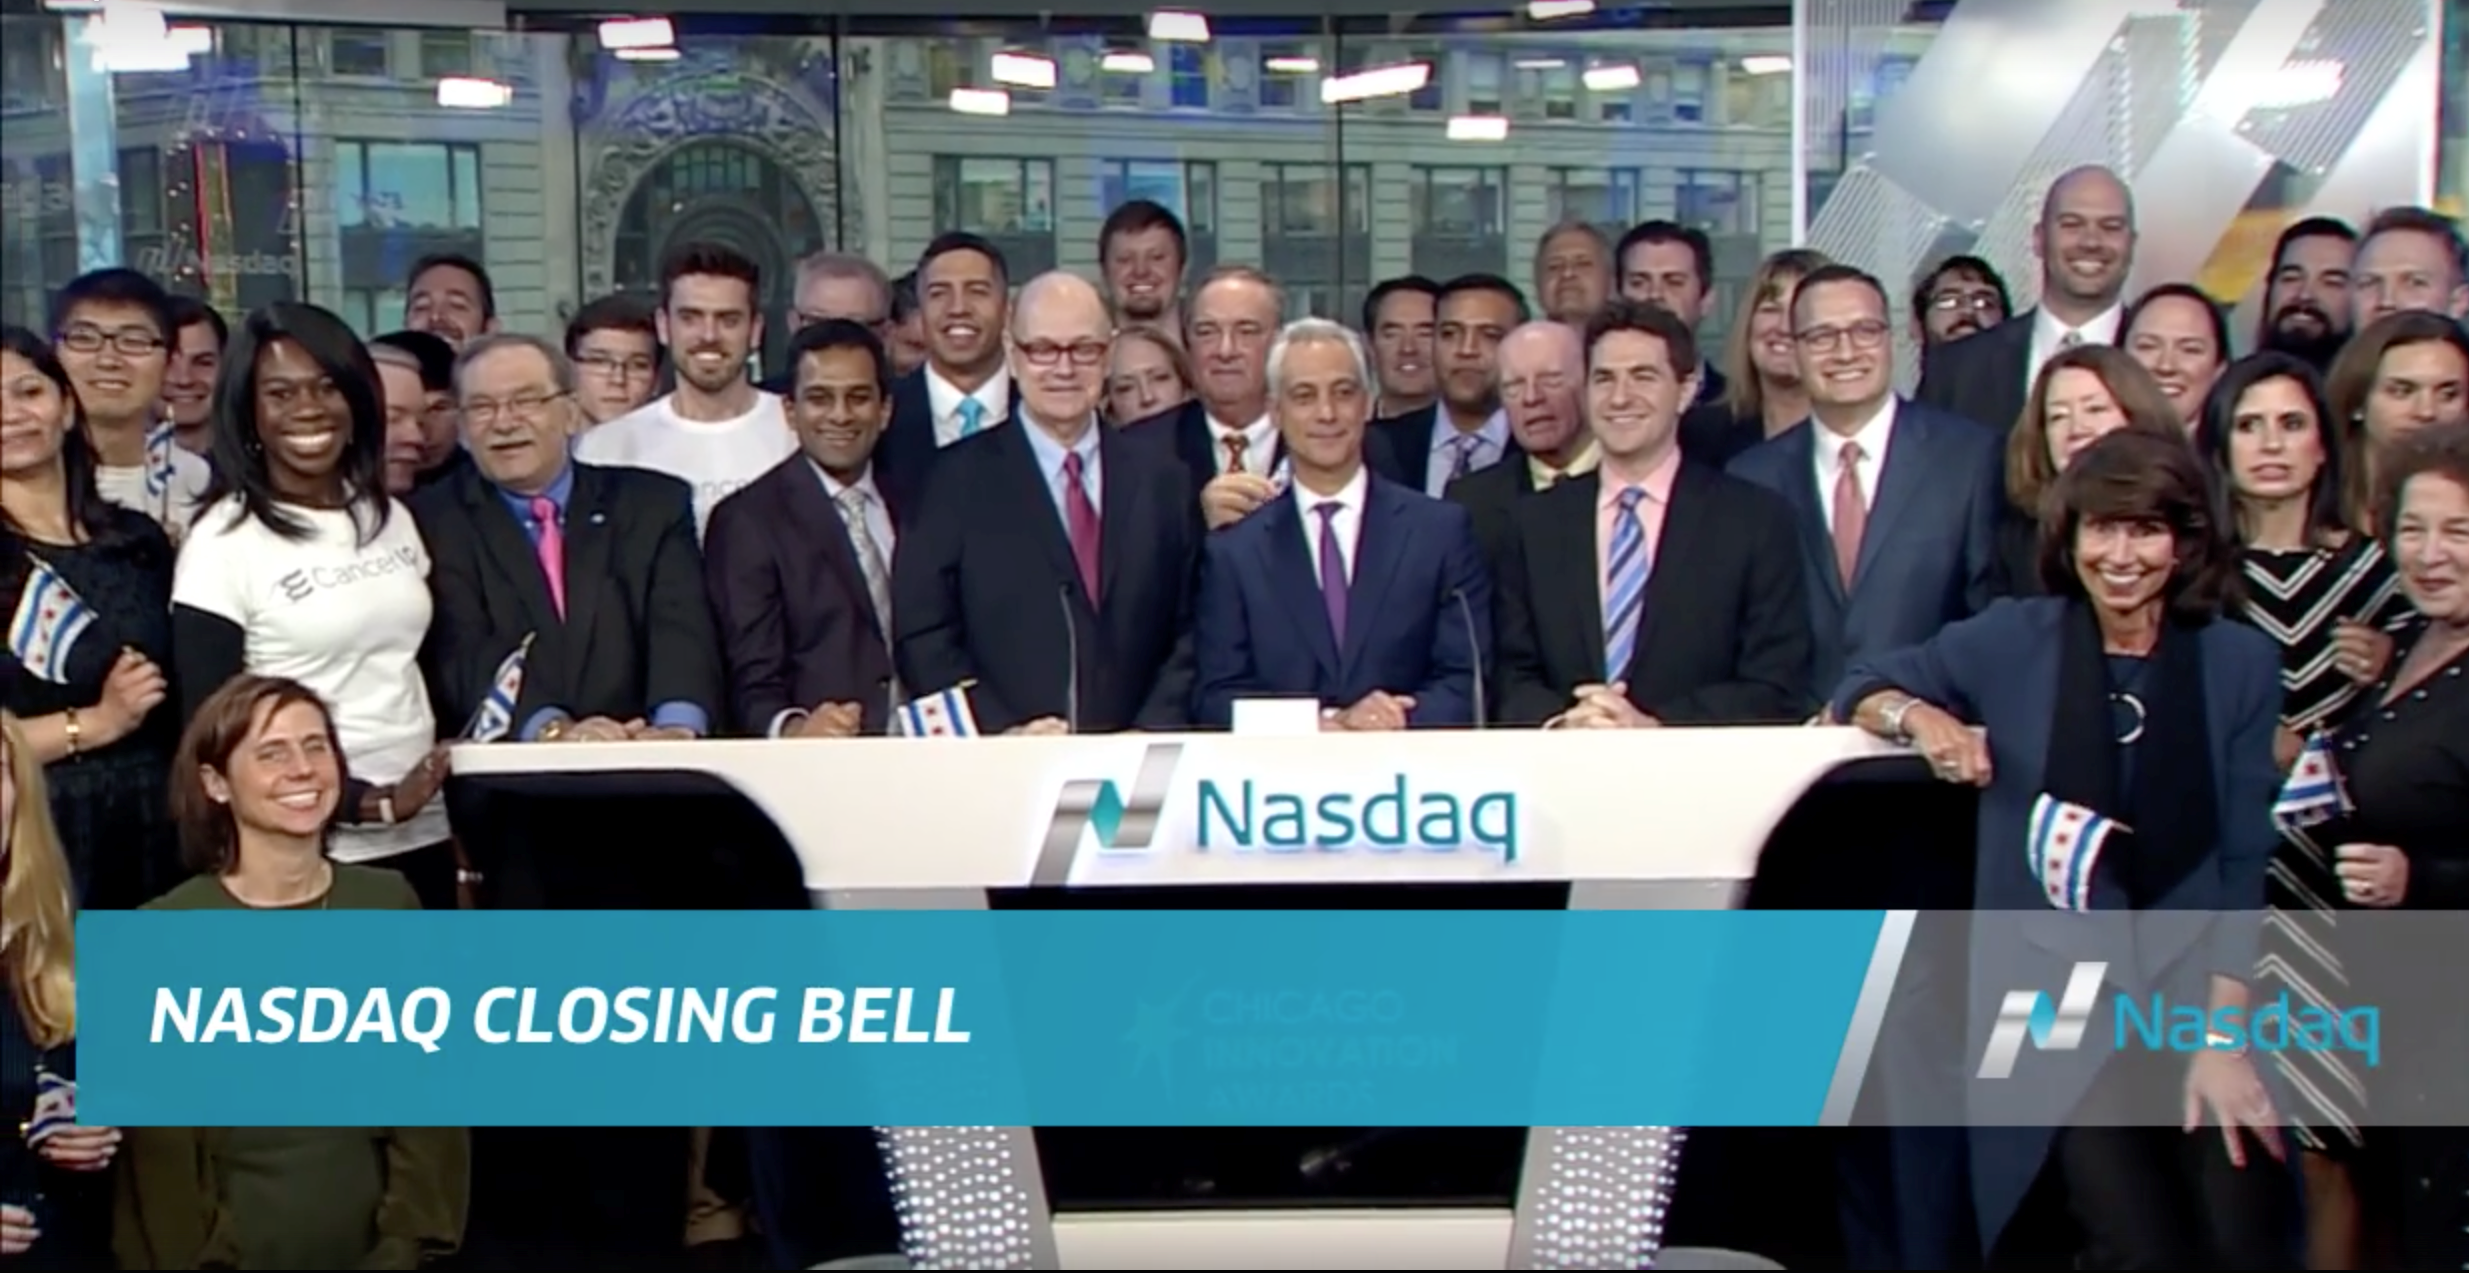 Closing bell photo.png